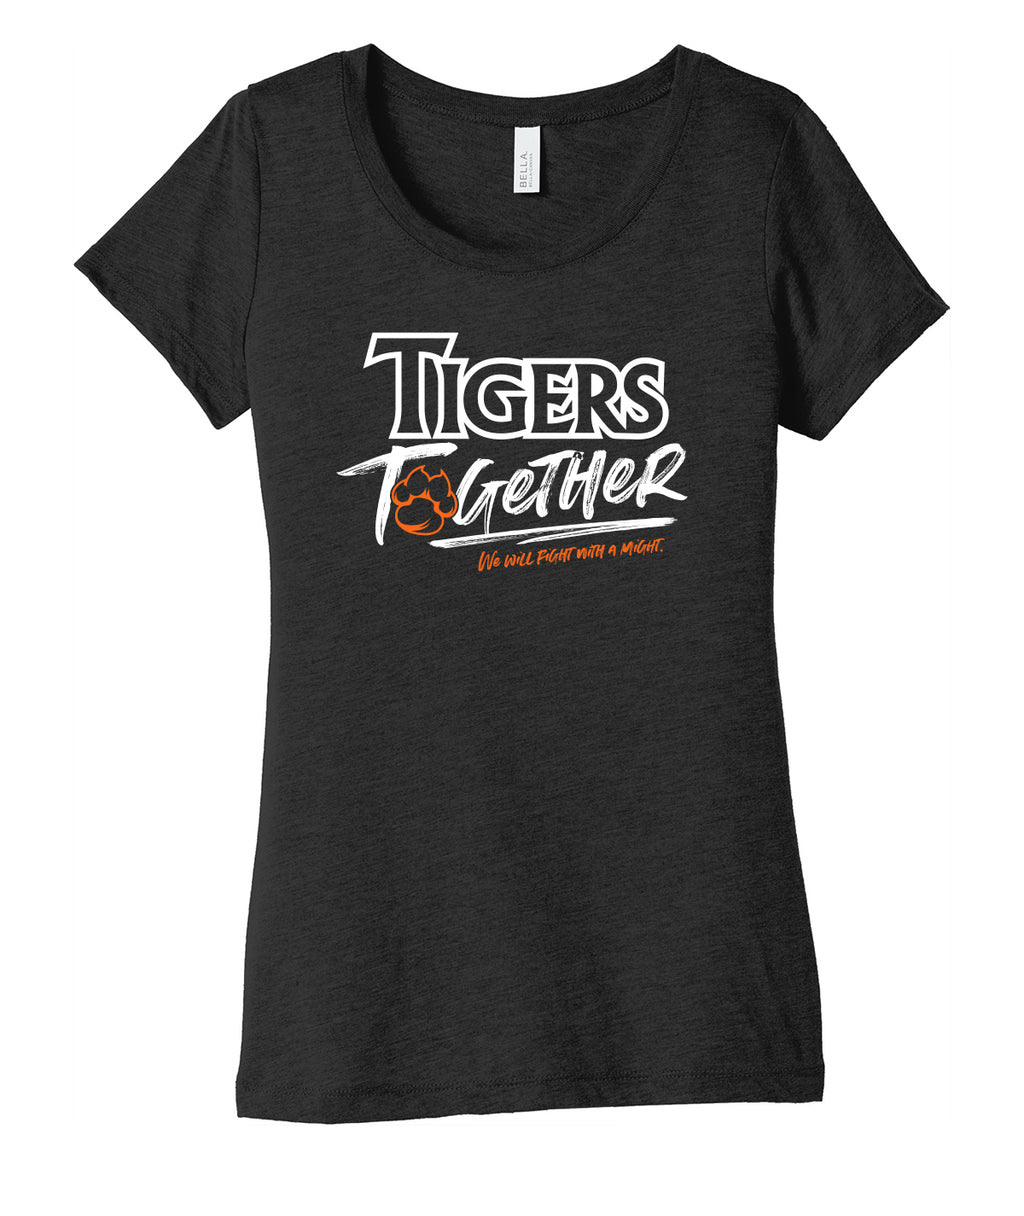 Hillside Tigers Together Womens Triblend Tee